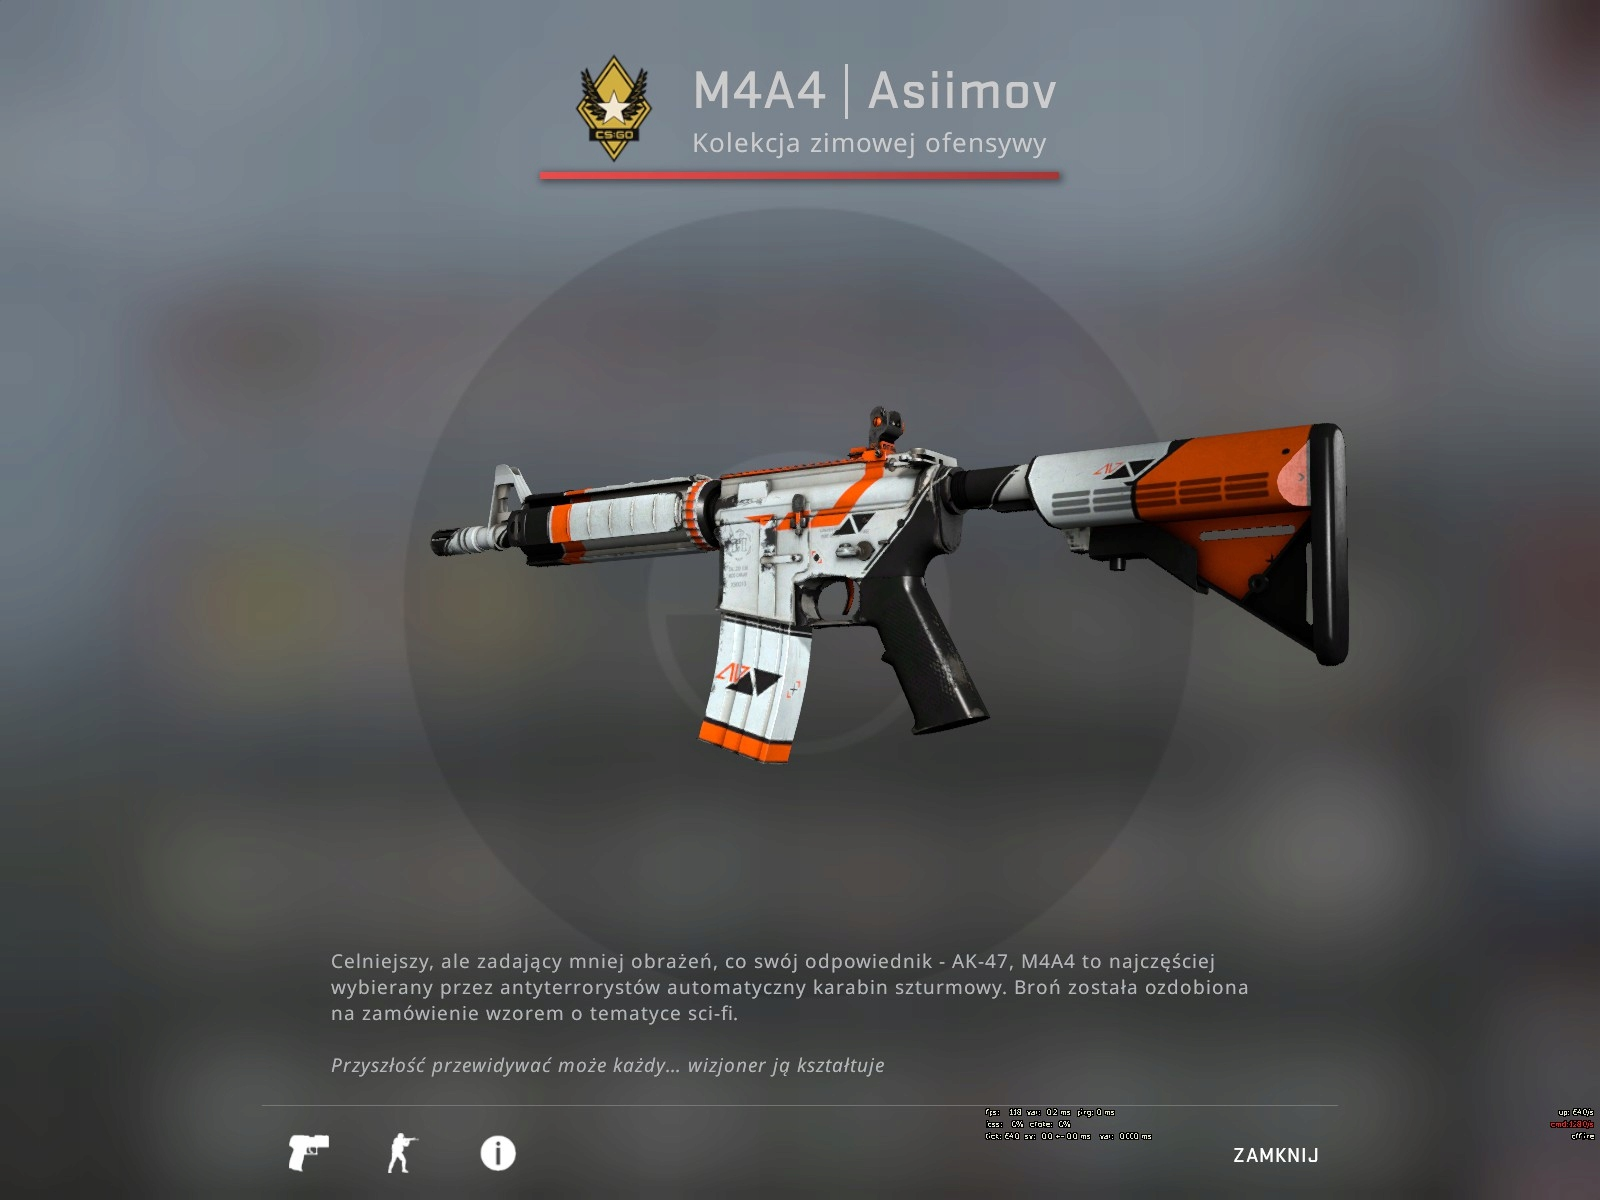 Counter-Strike: Global Offensive: M4A4 Asiimov BS